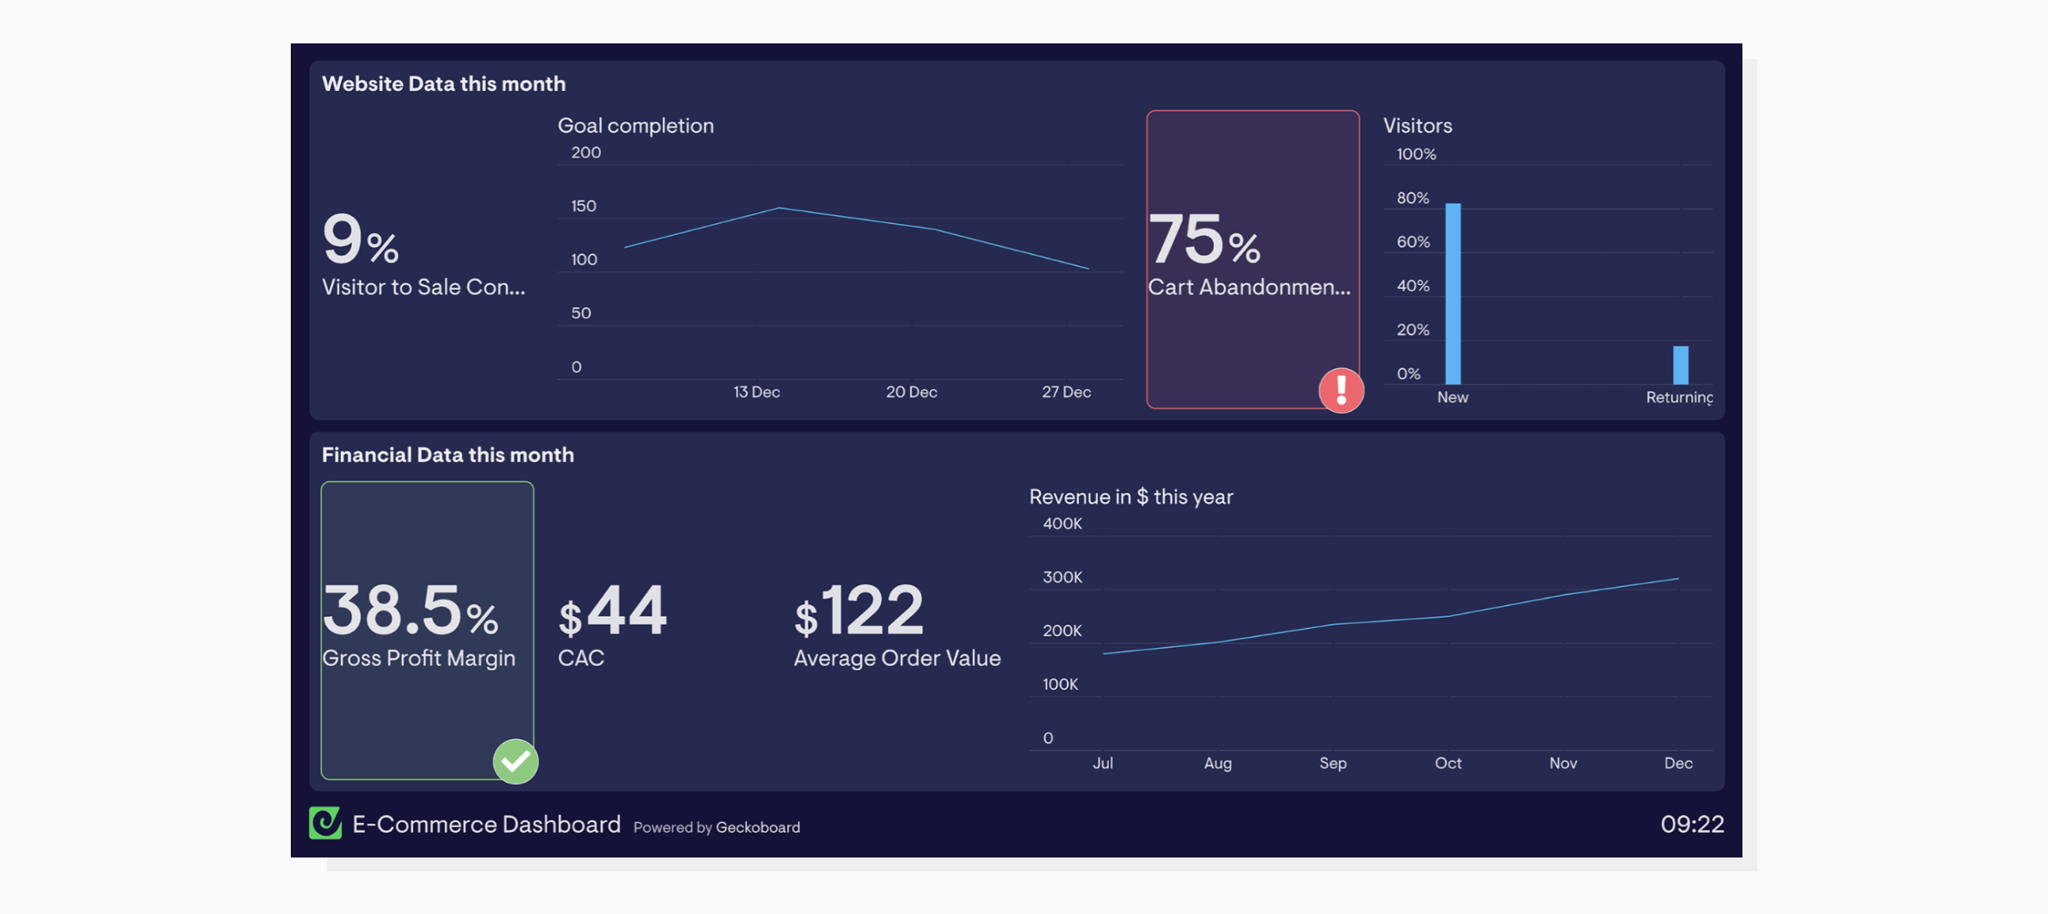 An ecommerce dashboard by geckoboard